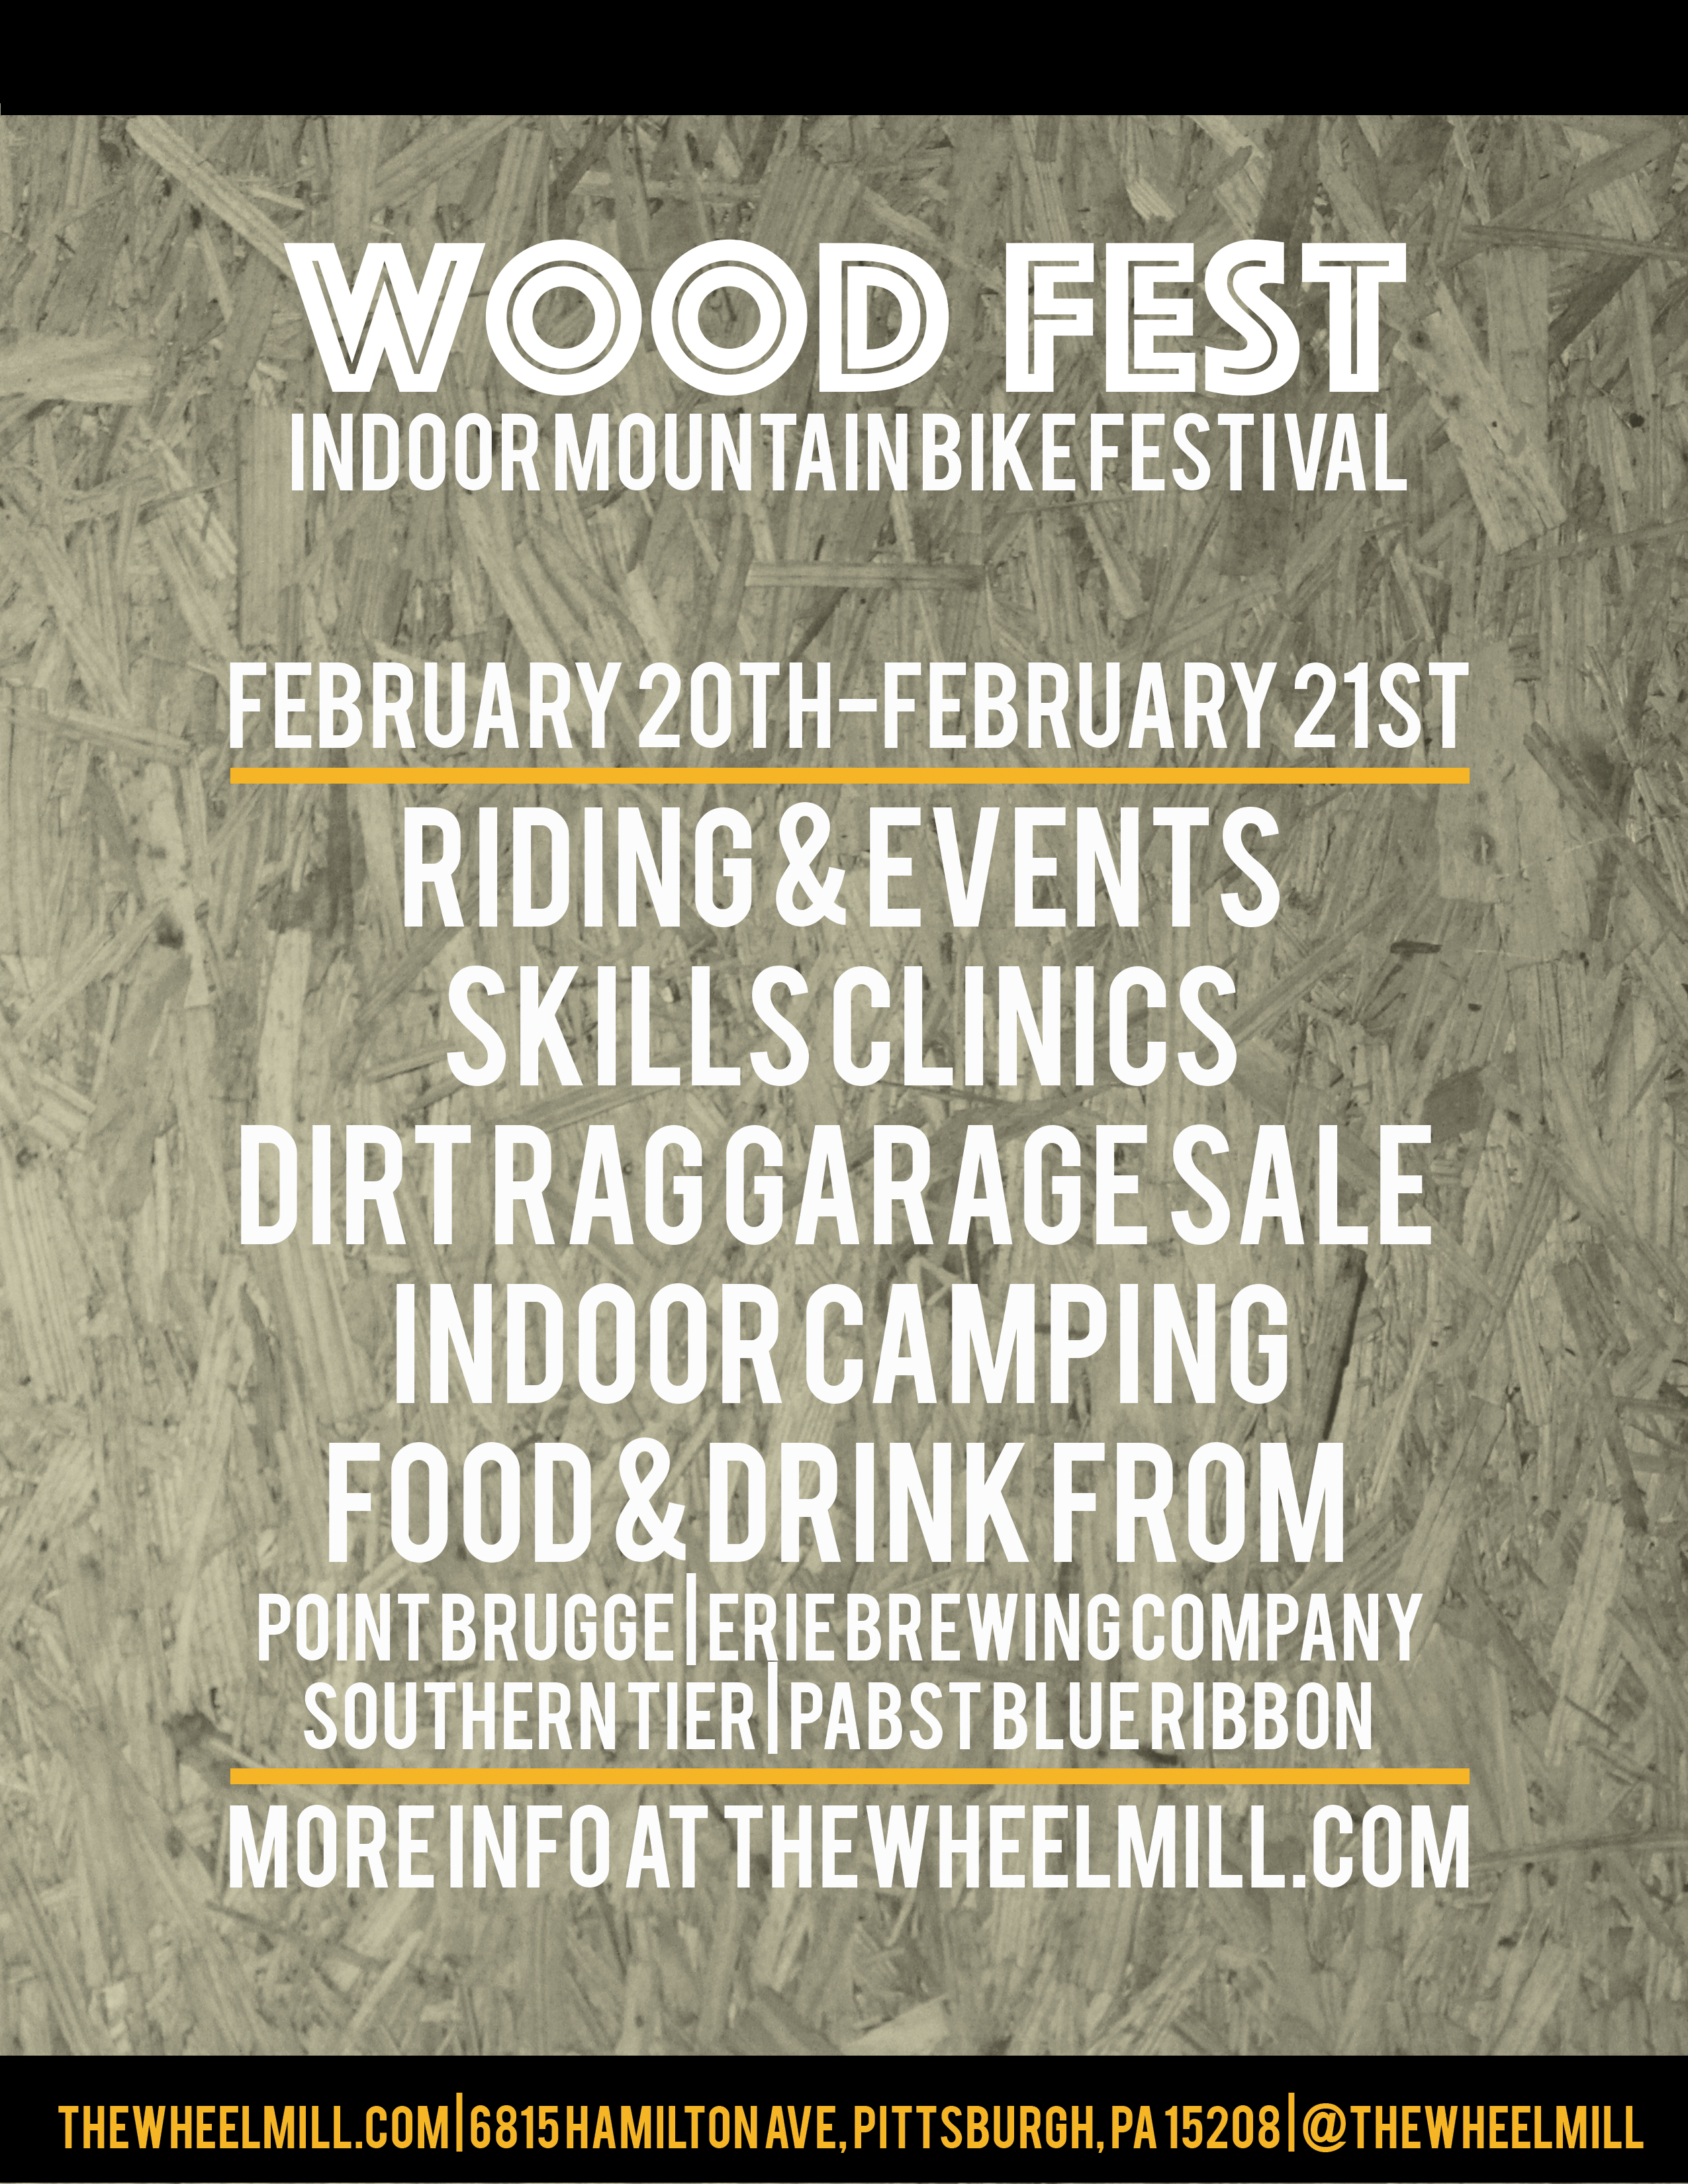 Dirt bikes for sale pittsburgh pa - On February 20th We Will Be Hosting Wood Fest An Indoor Mountain Bike Festival Throughout The Day There Will Be Skills Clinics Bike Demos From Brands